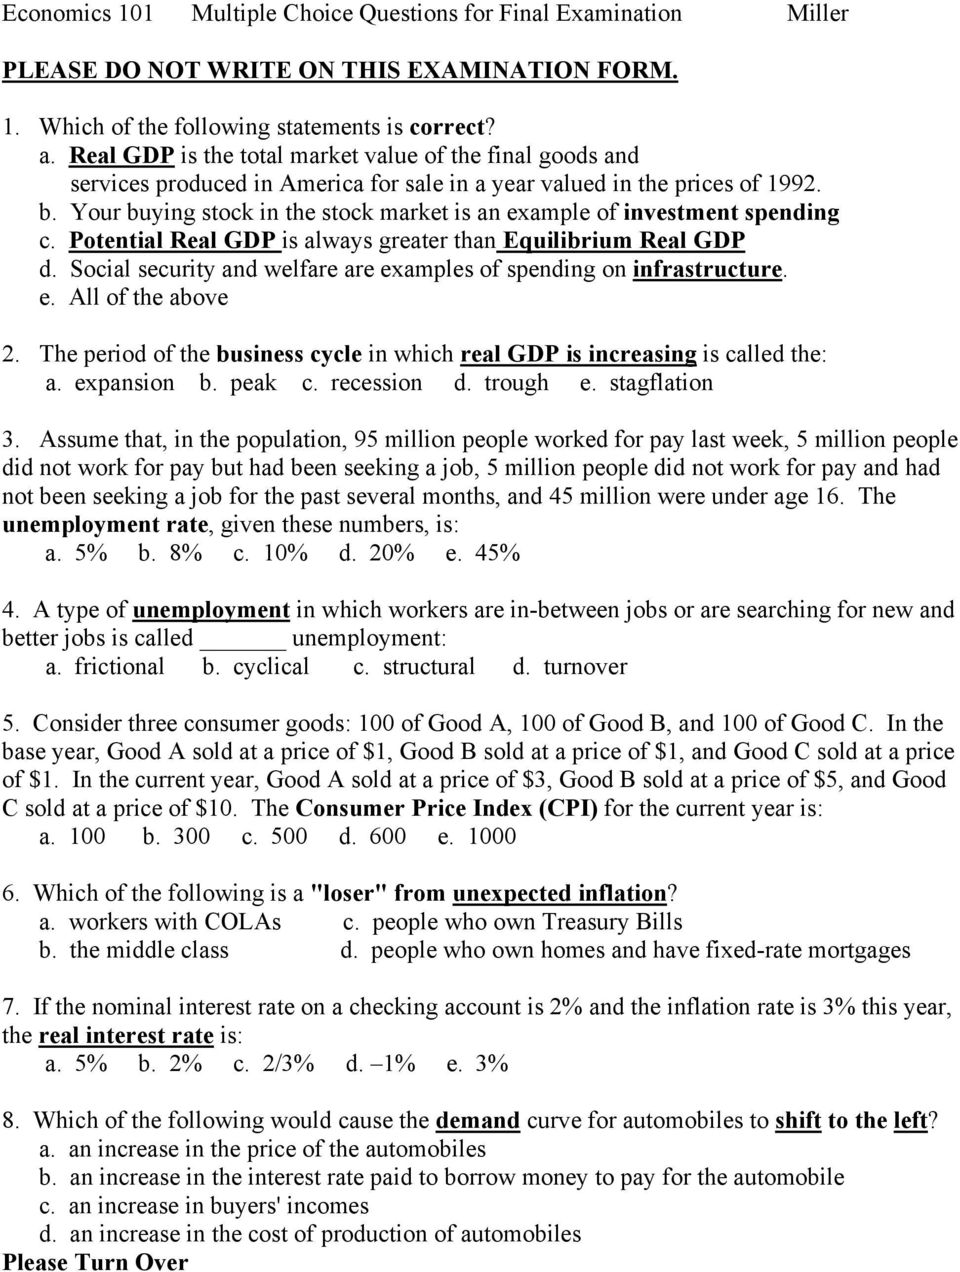 microeconomics multiple choice questions and answers doc